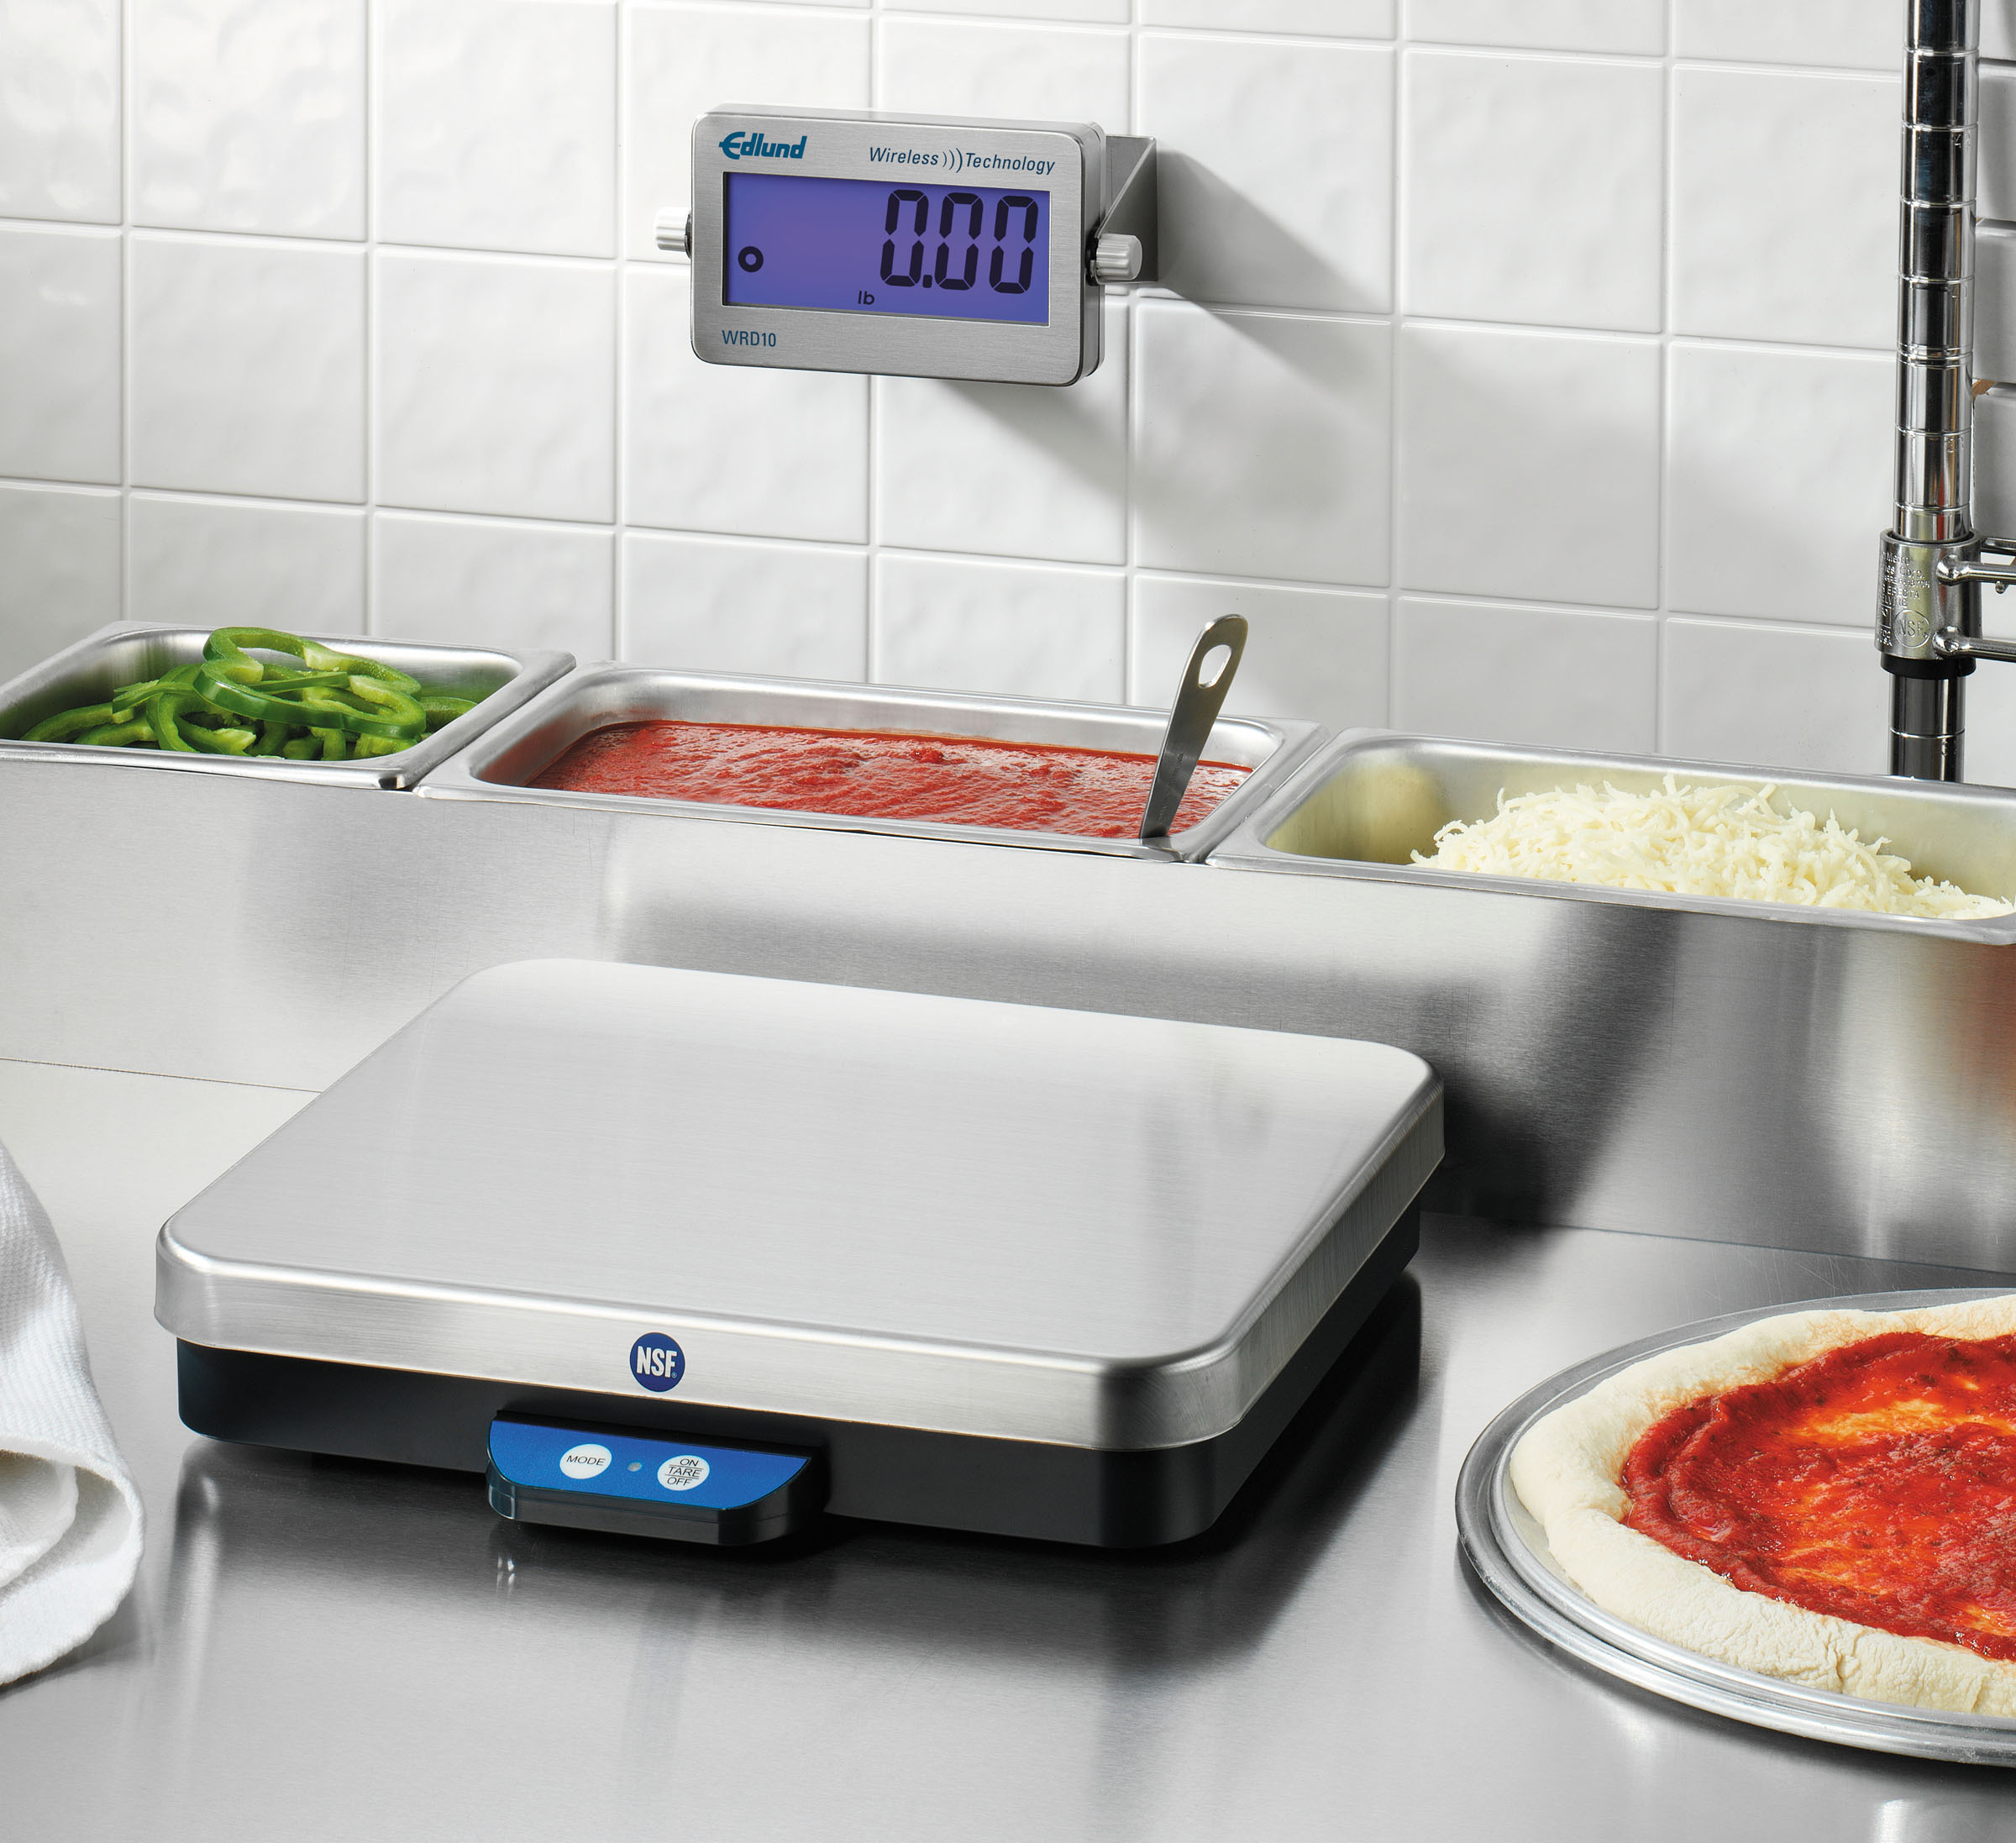 Edlund 10 Lb Wireless Remote Digital Pizza Portion Scale W/ Front Tare Switch